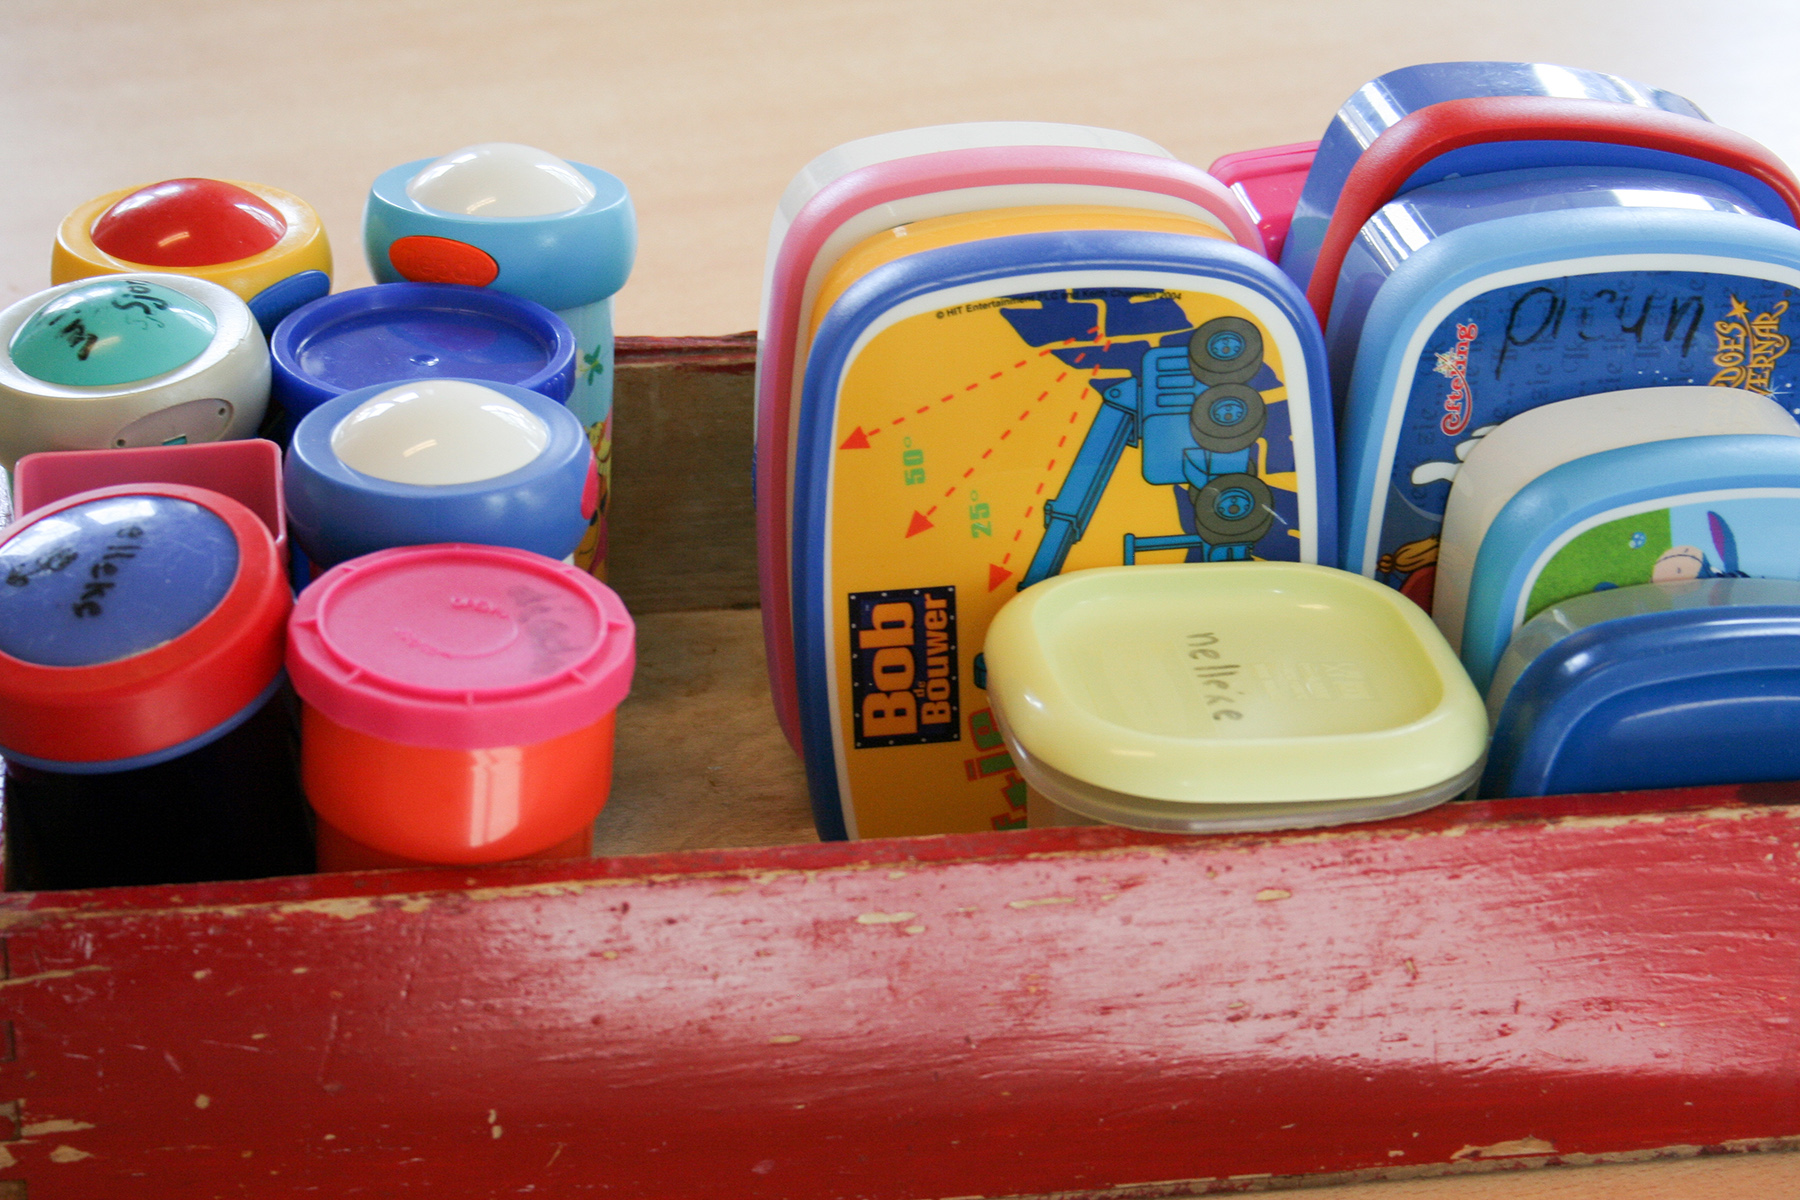 A collection of student lunchboxes at a Dutch school